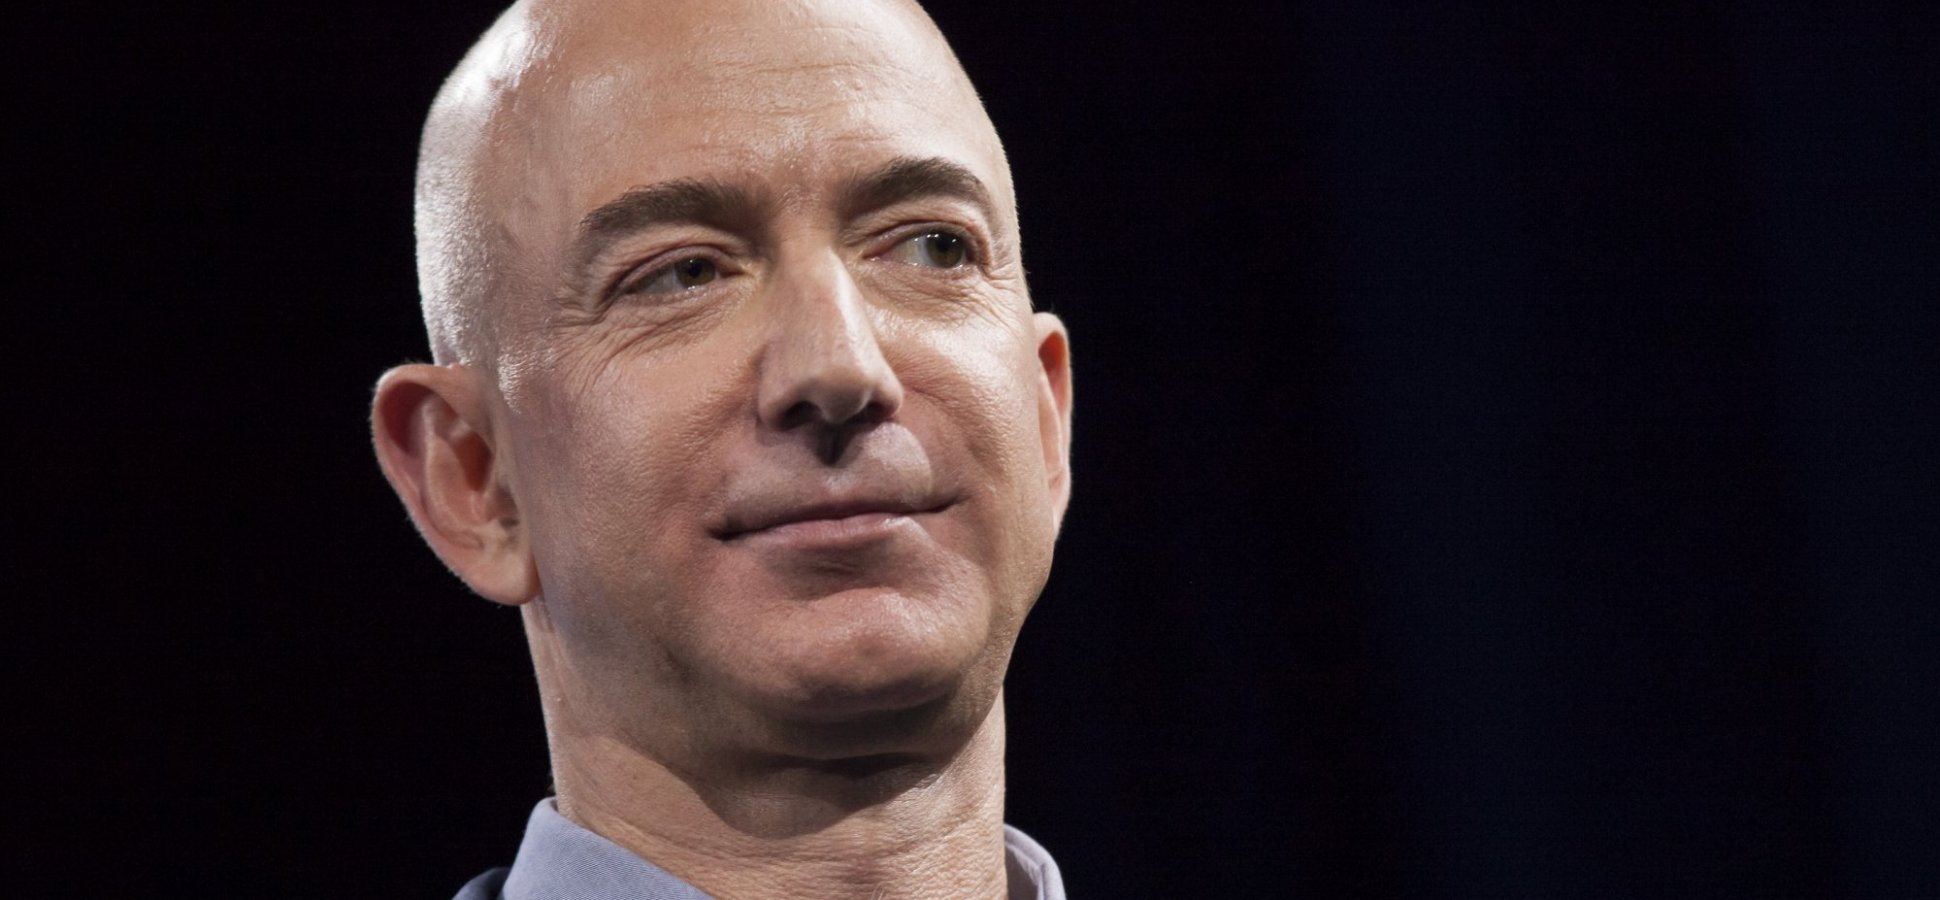 Jeff Bezos Revealed the Secret of Amazon's Stunning Success in Just 3 Words